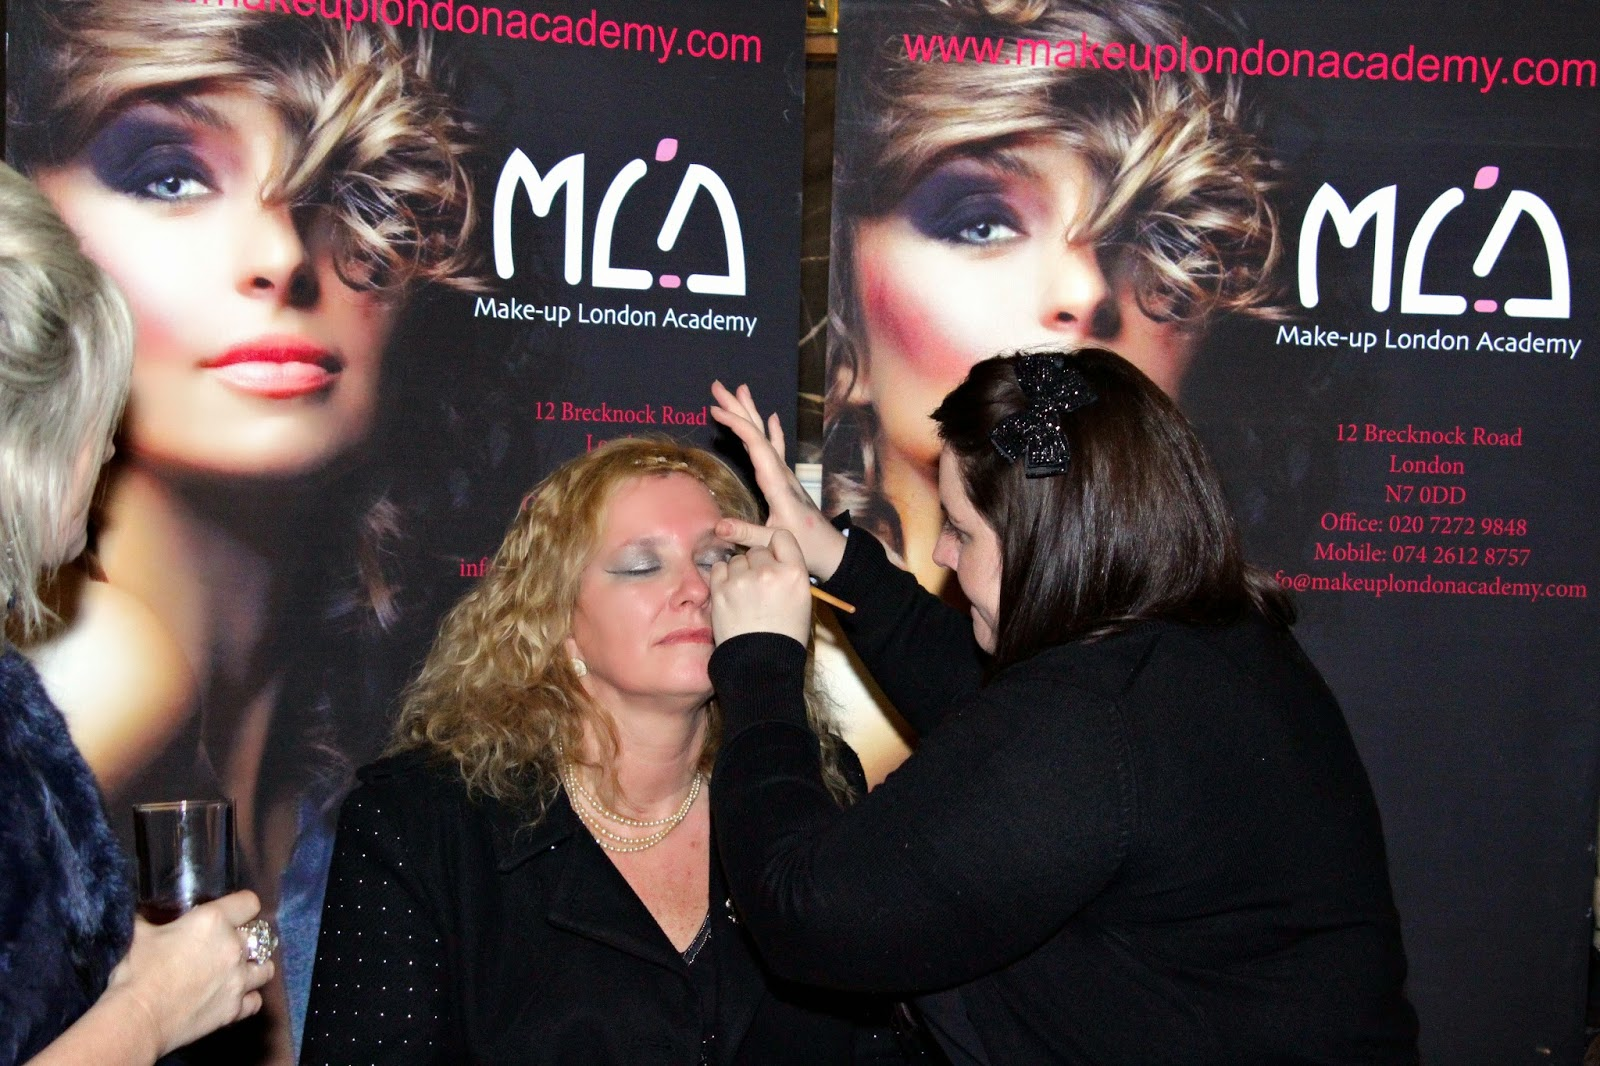 Make up London Academy - Birmingham Fashion Week Sponsor